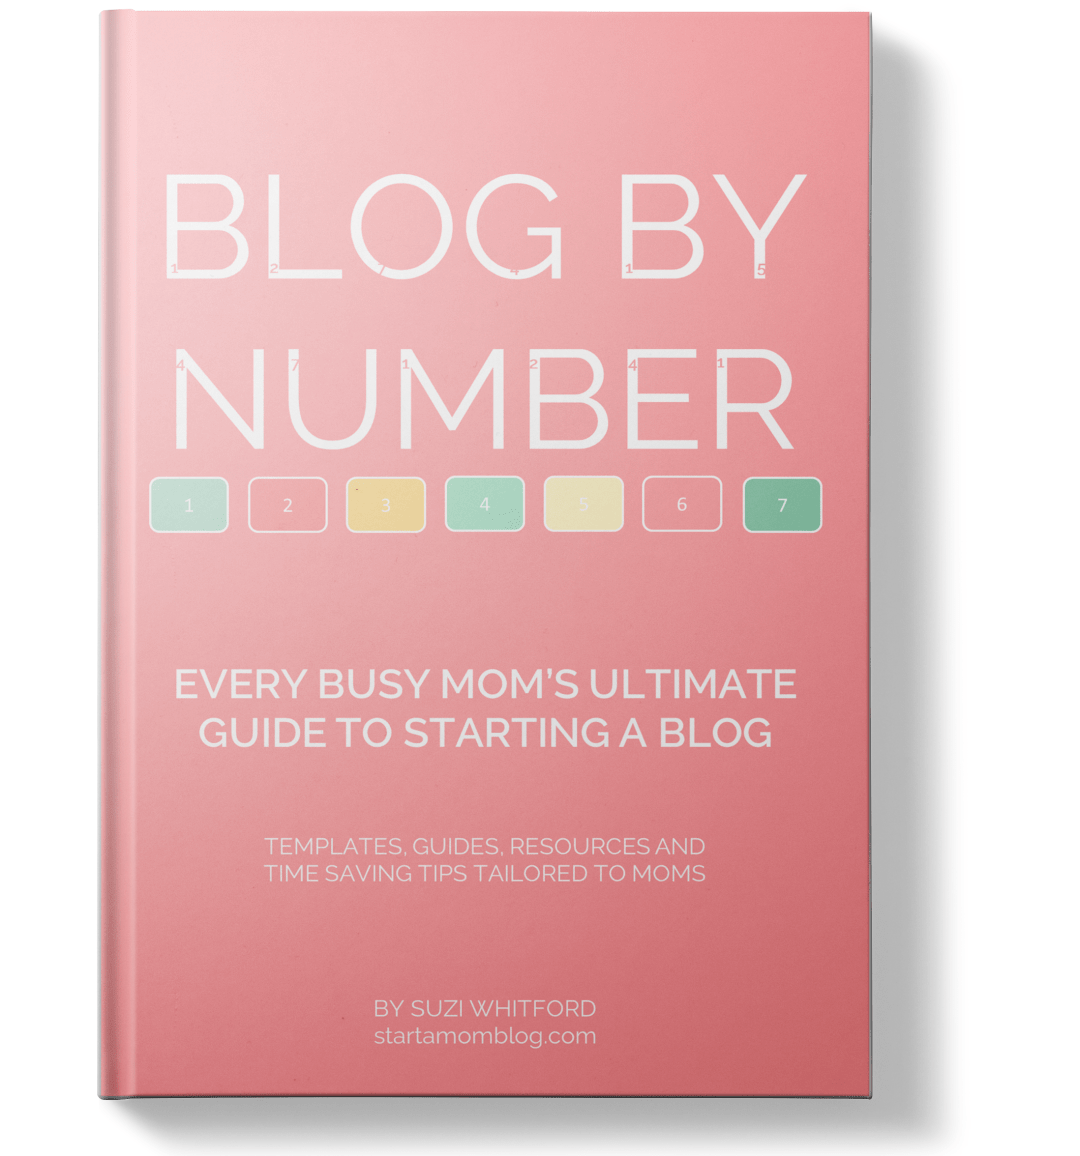 Blog-by-Number-hard-cover-top-3-square2